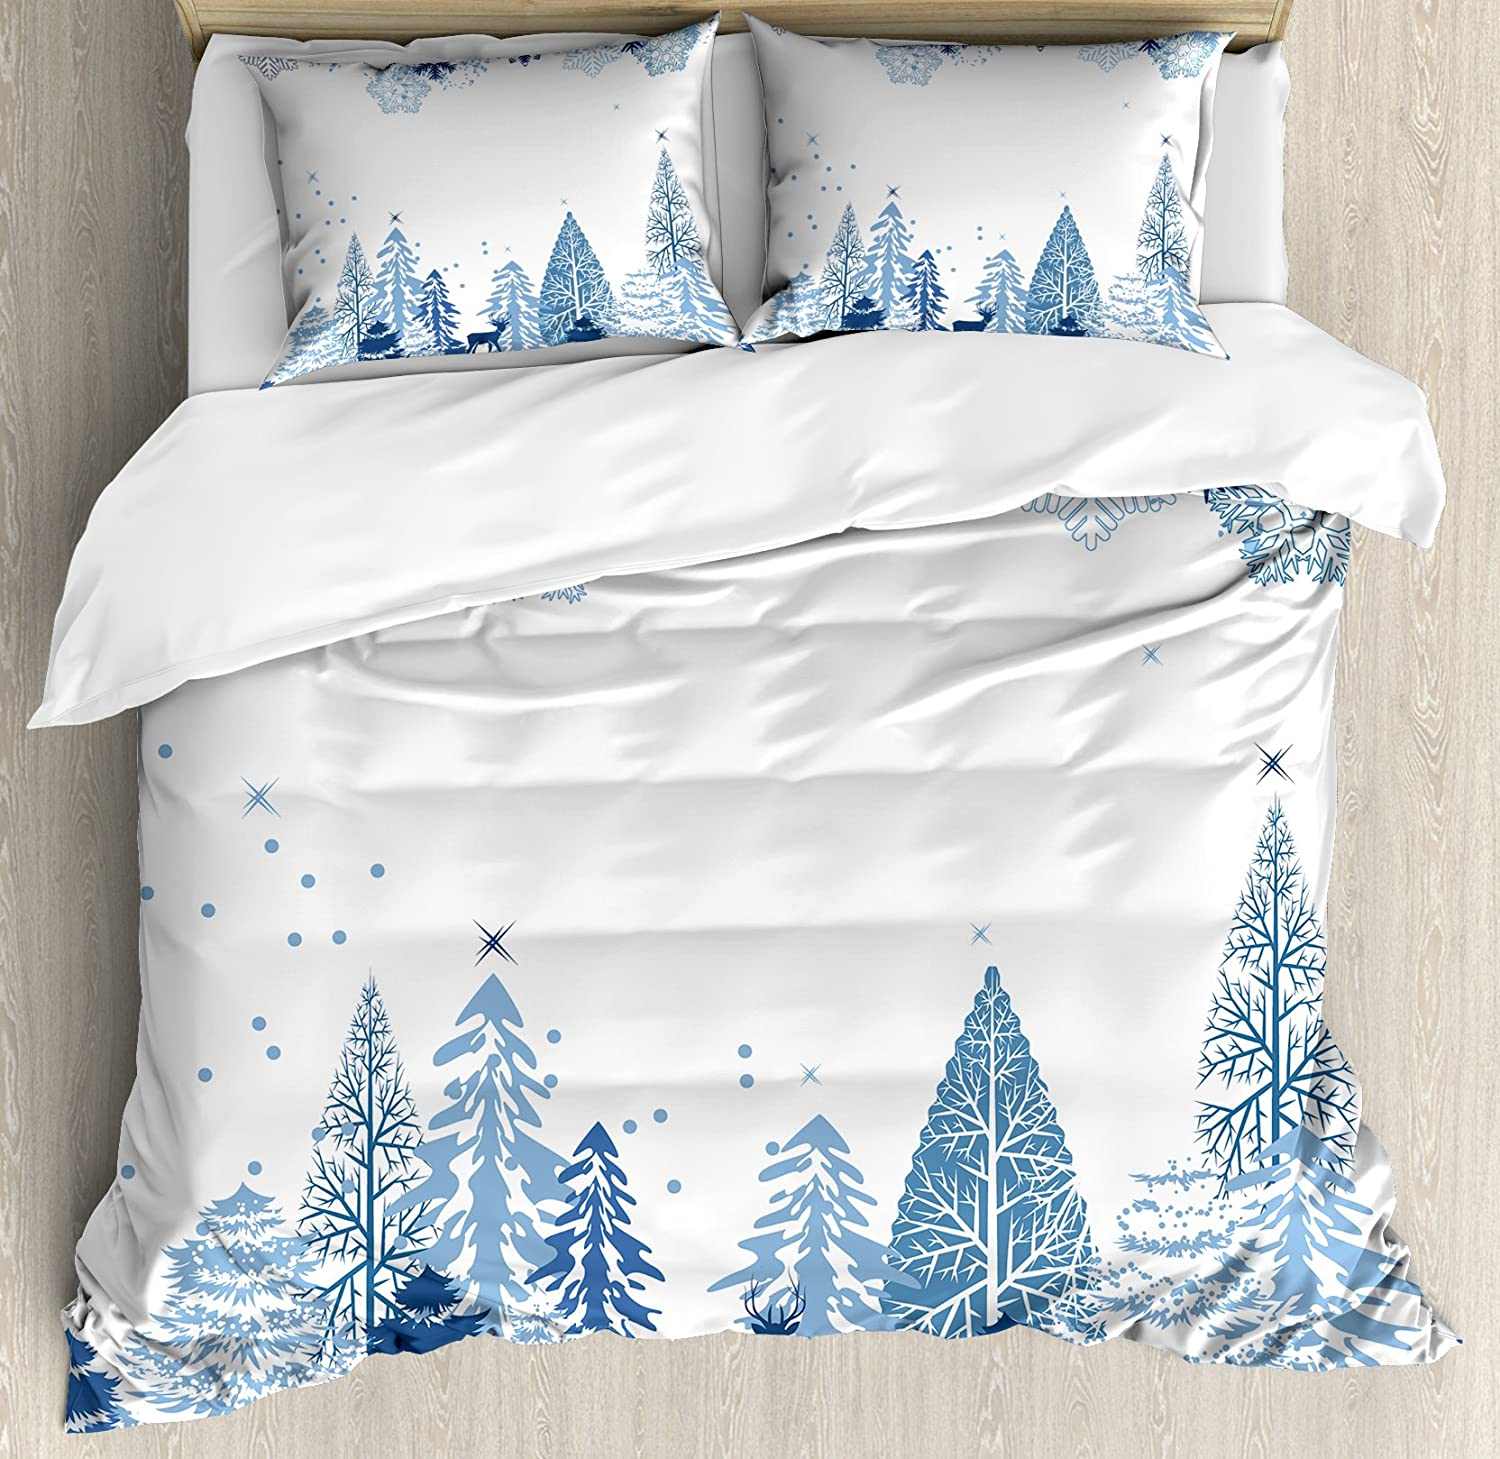 Ambesonne Winter Duvet Cash special price Cover Set Cold Trees Deer Scene Max 42% OFF a Frozen